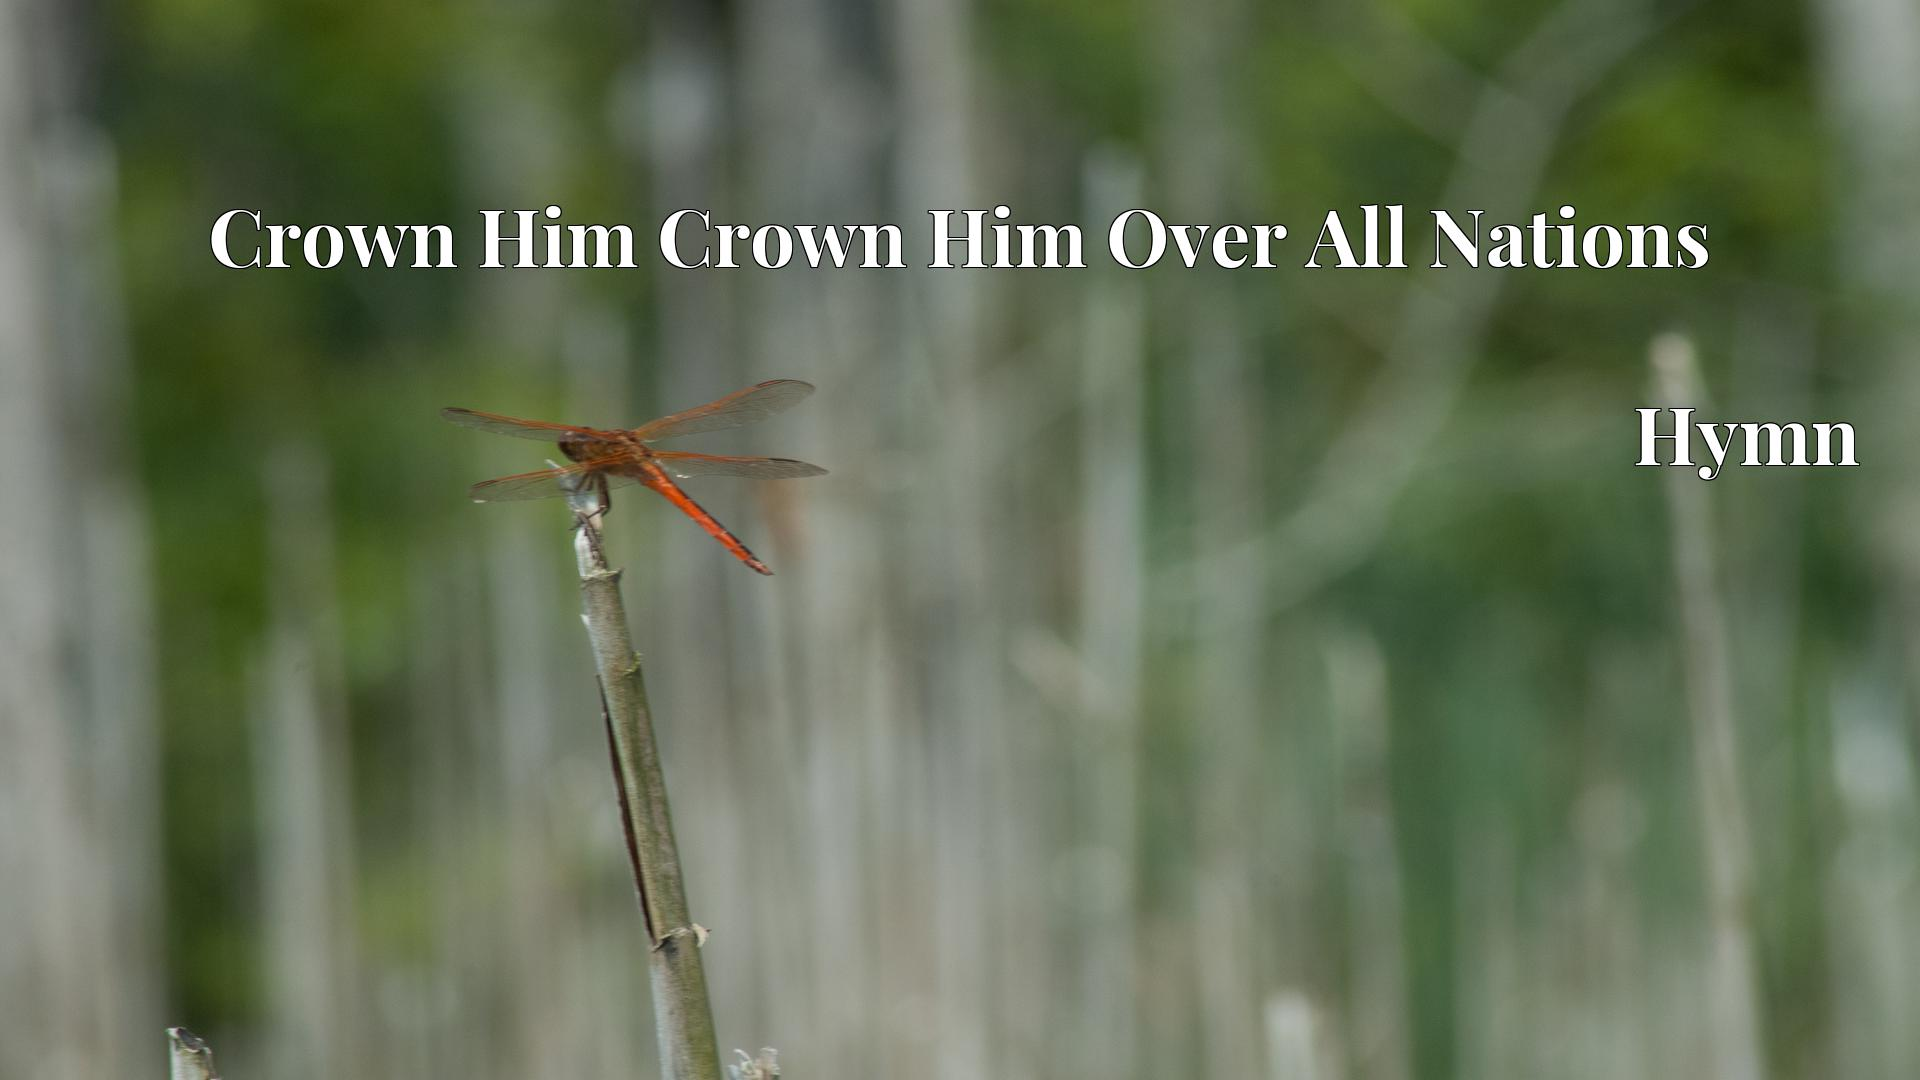 Crown Him Crown Him Over All Nations - Hymn